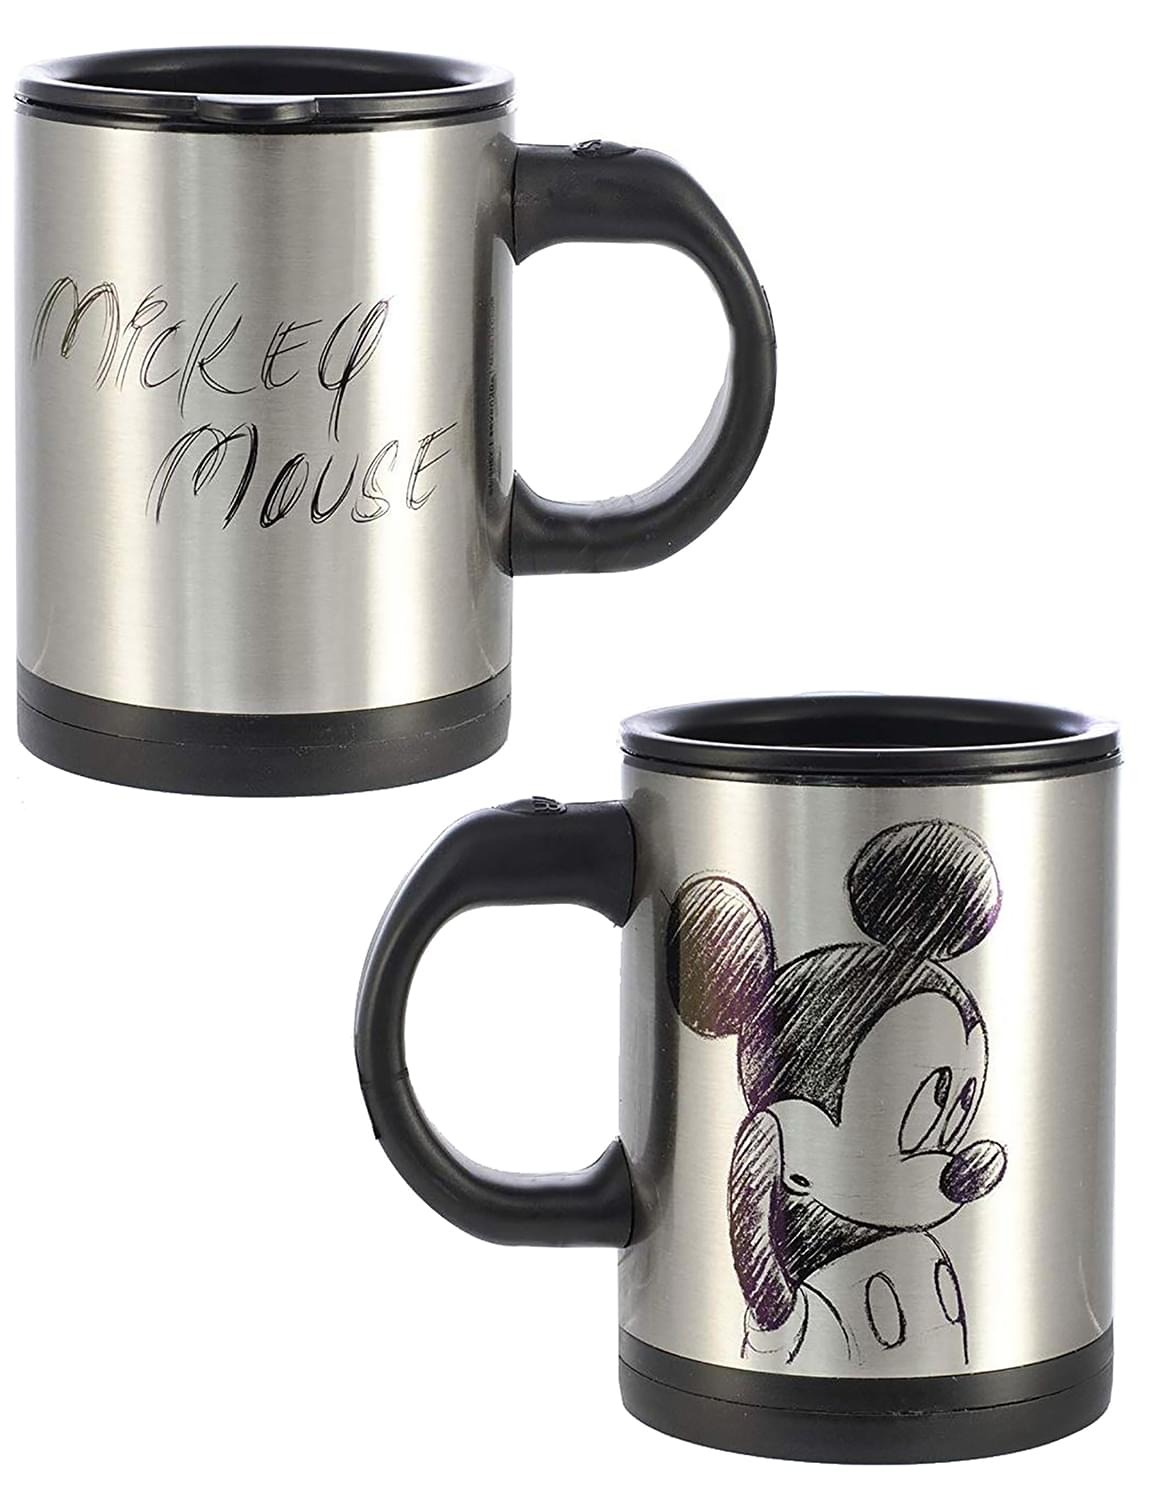 Disney Mickey Mouse Sketch Art Self-Stirring Mug